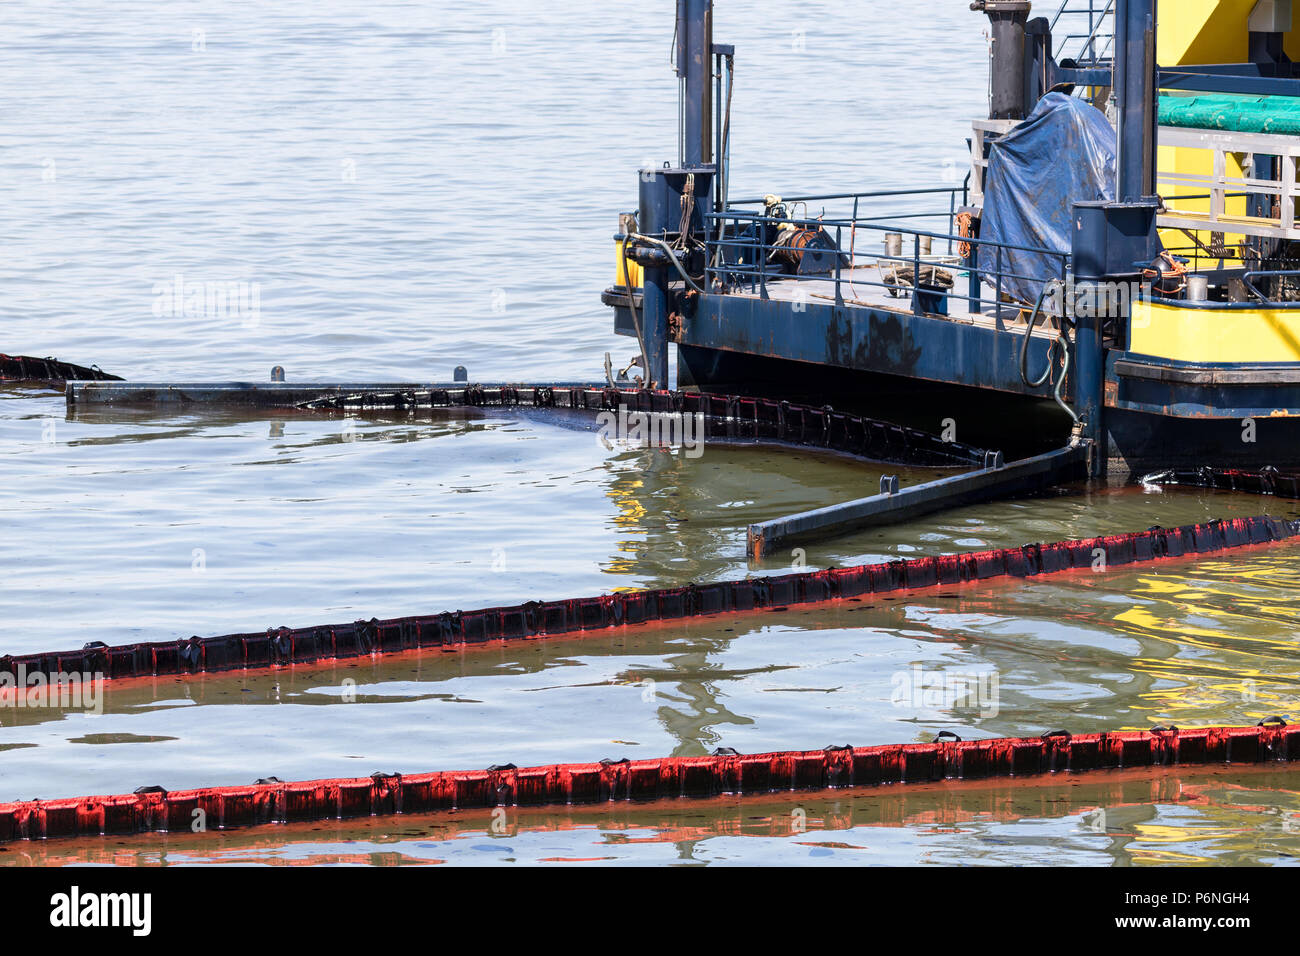 oil-spill response vessel cleaning pollution in the water - Stock Image